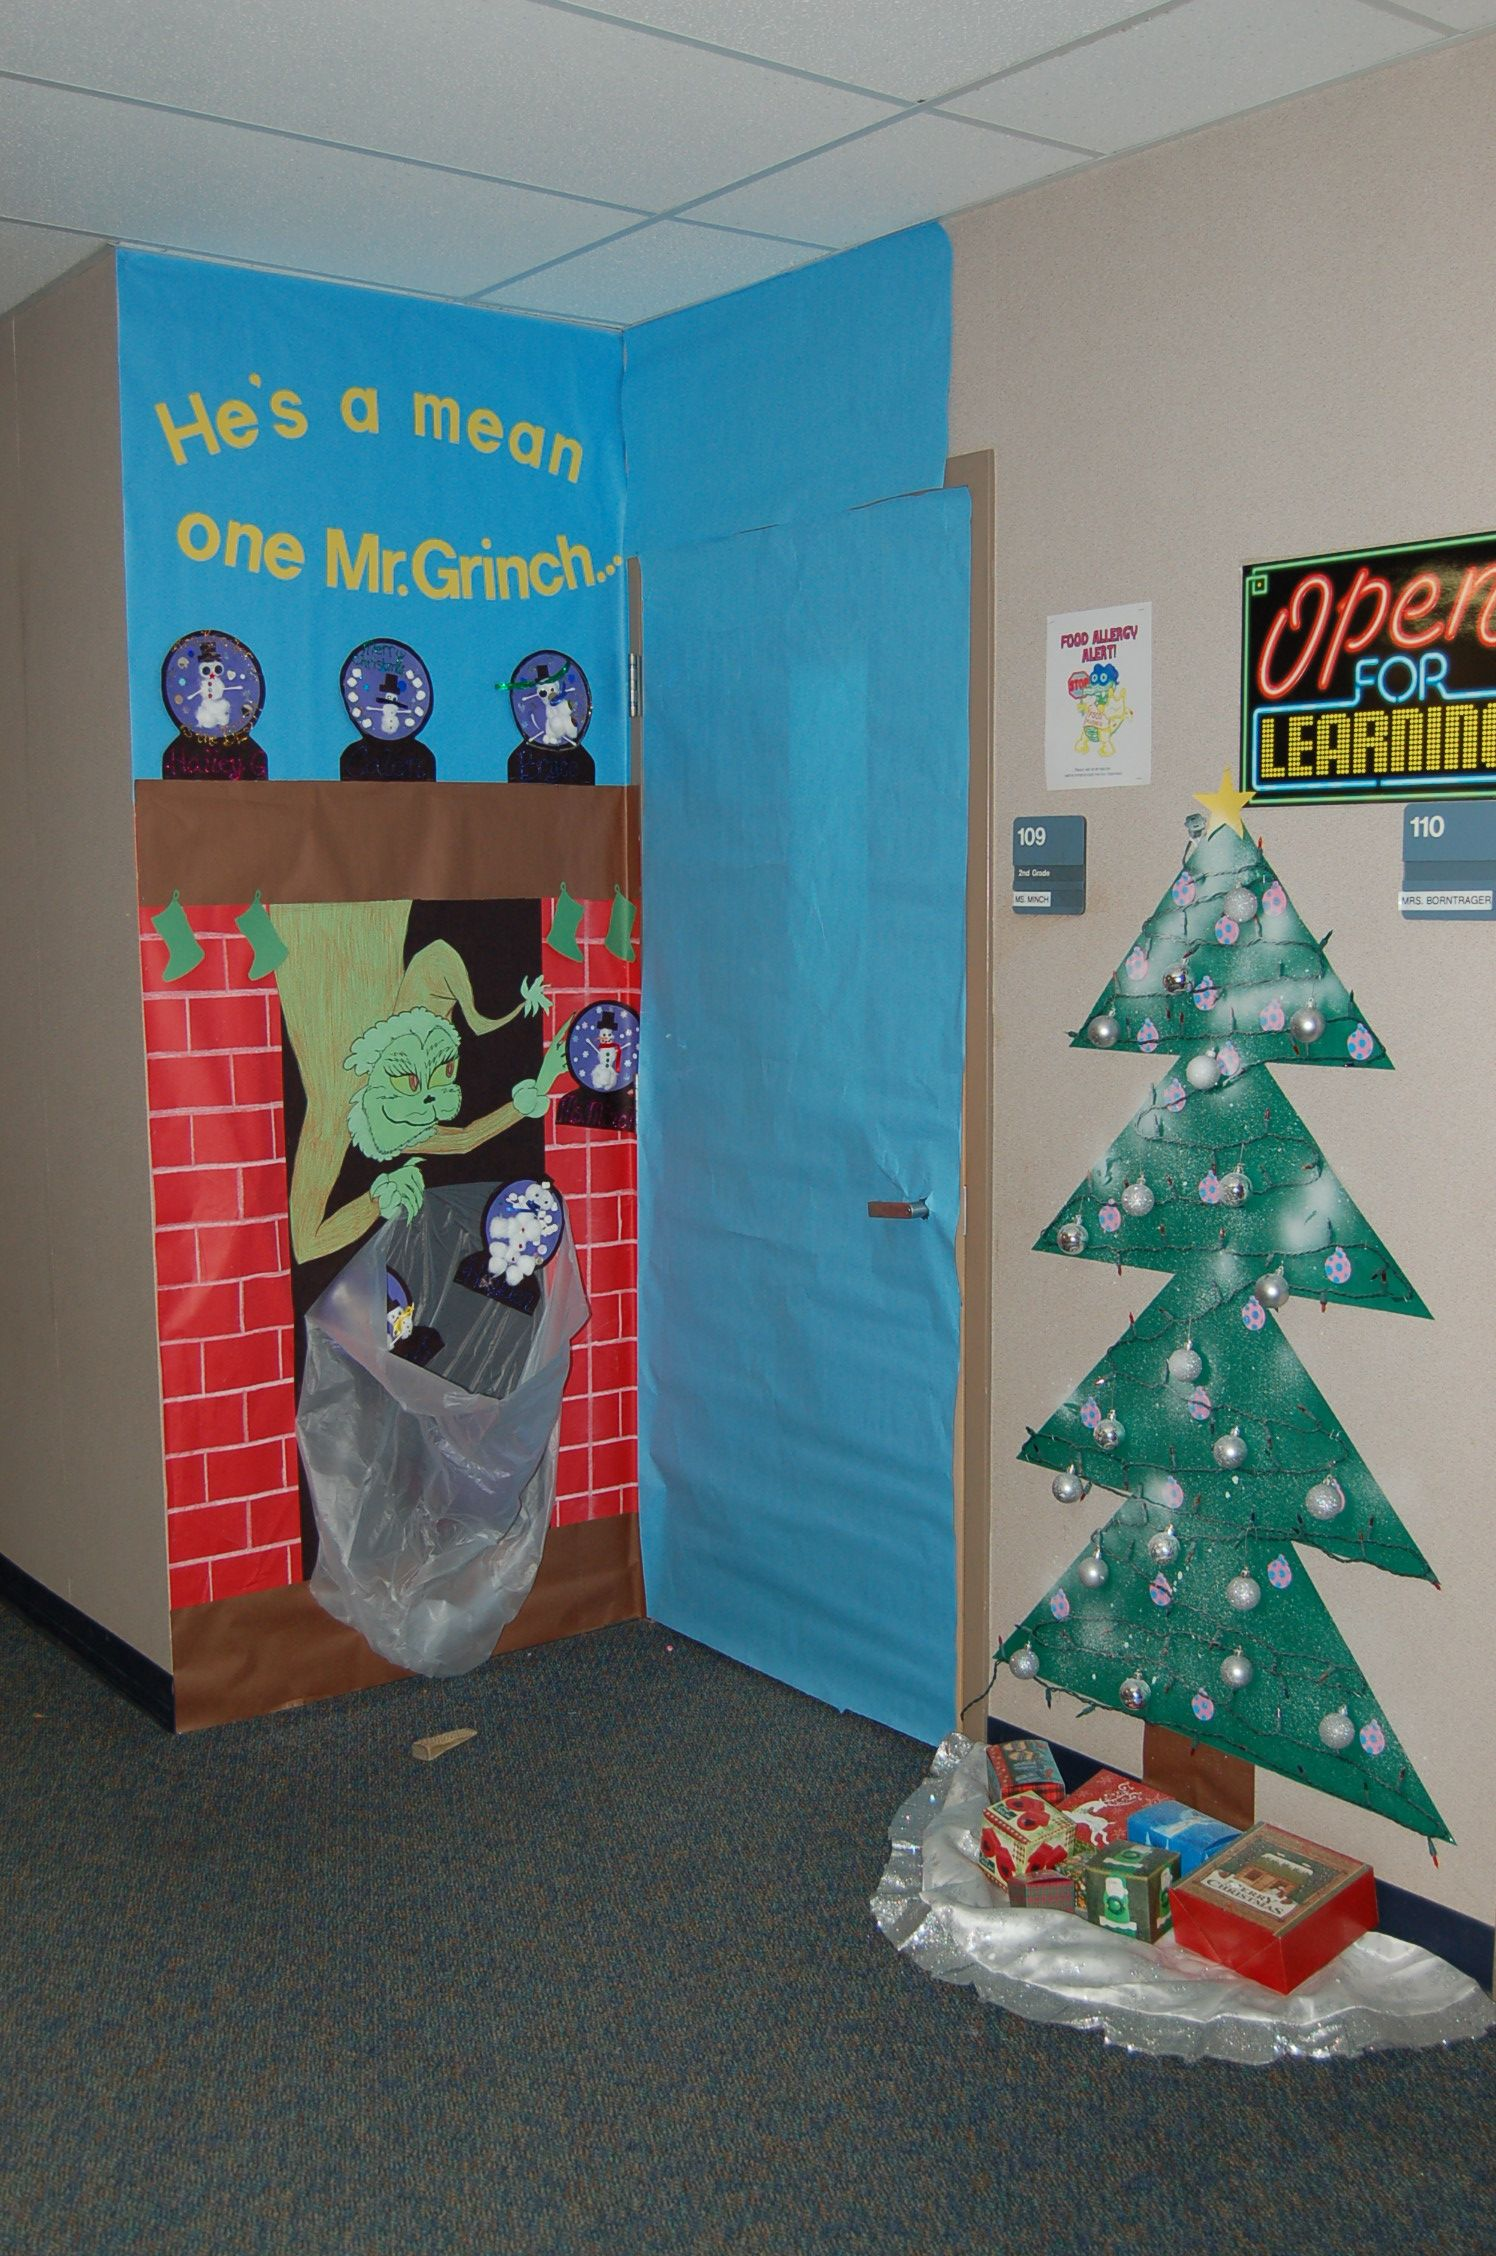 Christmas classroom door decoration ideas - A Simple Facebook Posting Sparked An Idea In Pam Karcher That Evolved Into A School Christmas Classroom Doorclassroom Door Decorationschristmas